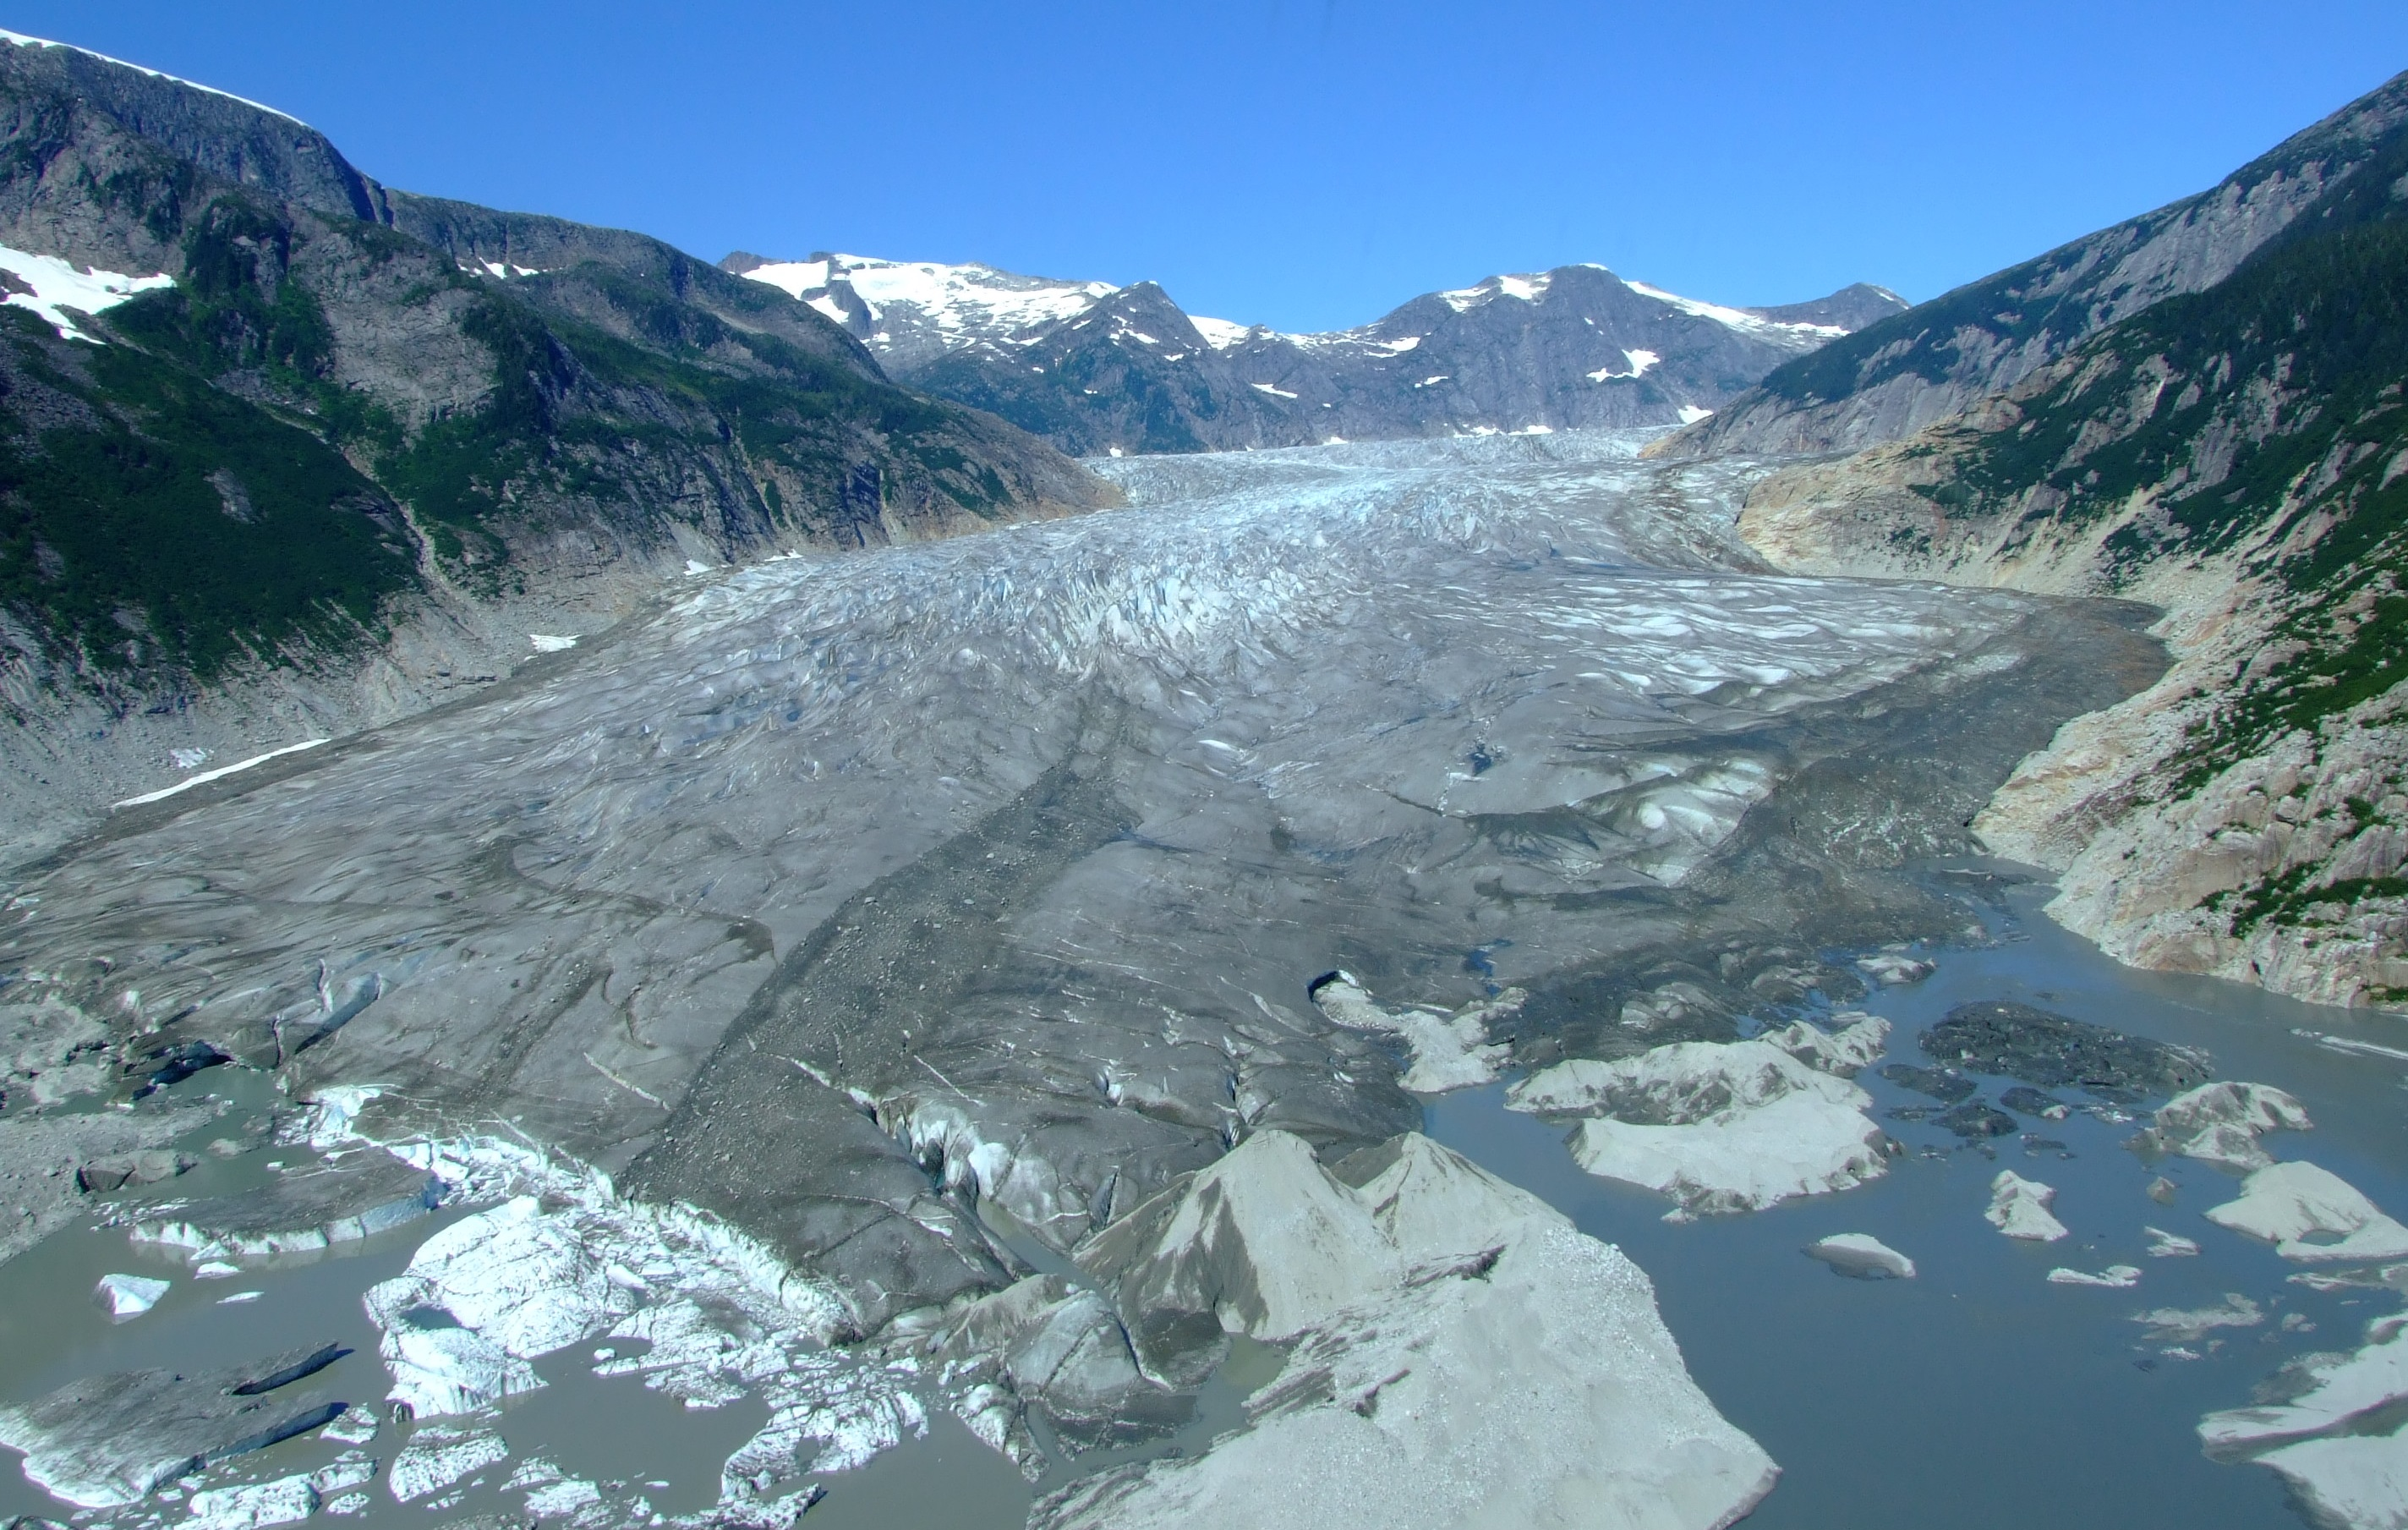 The terminus of the Norris Glacier. Go while it's there to be seen.